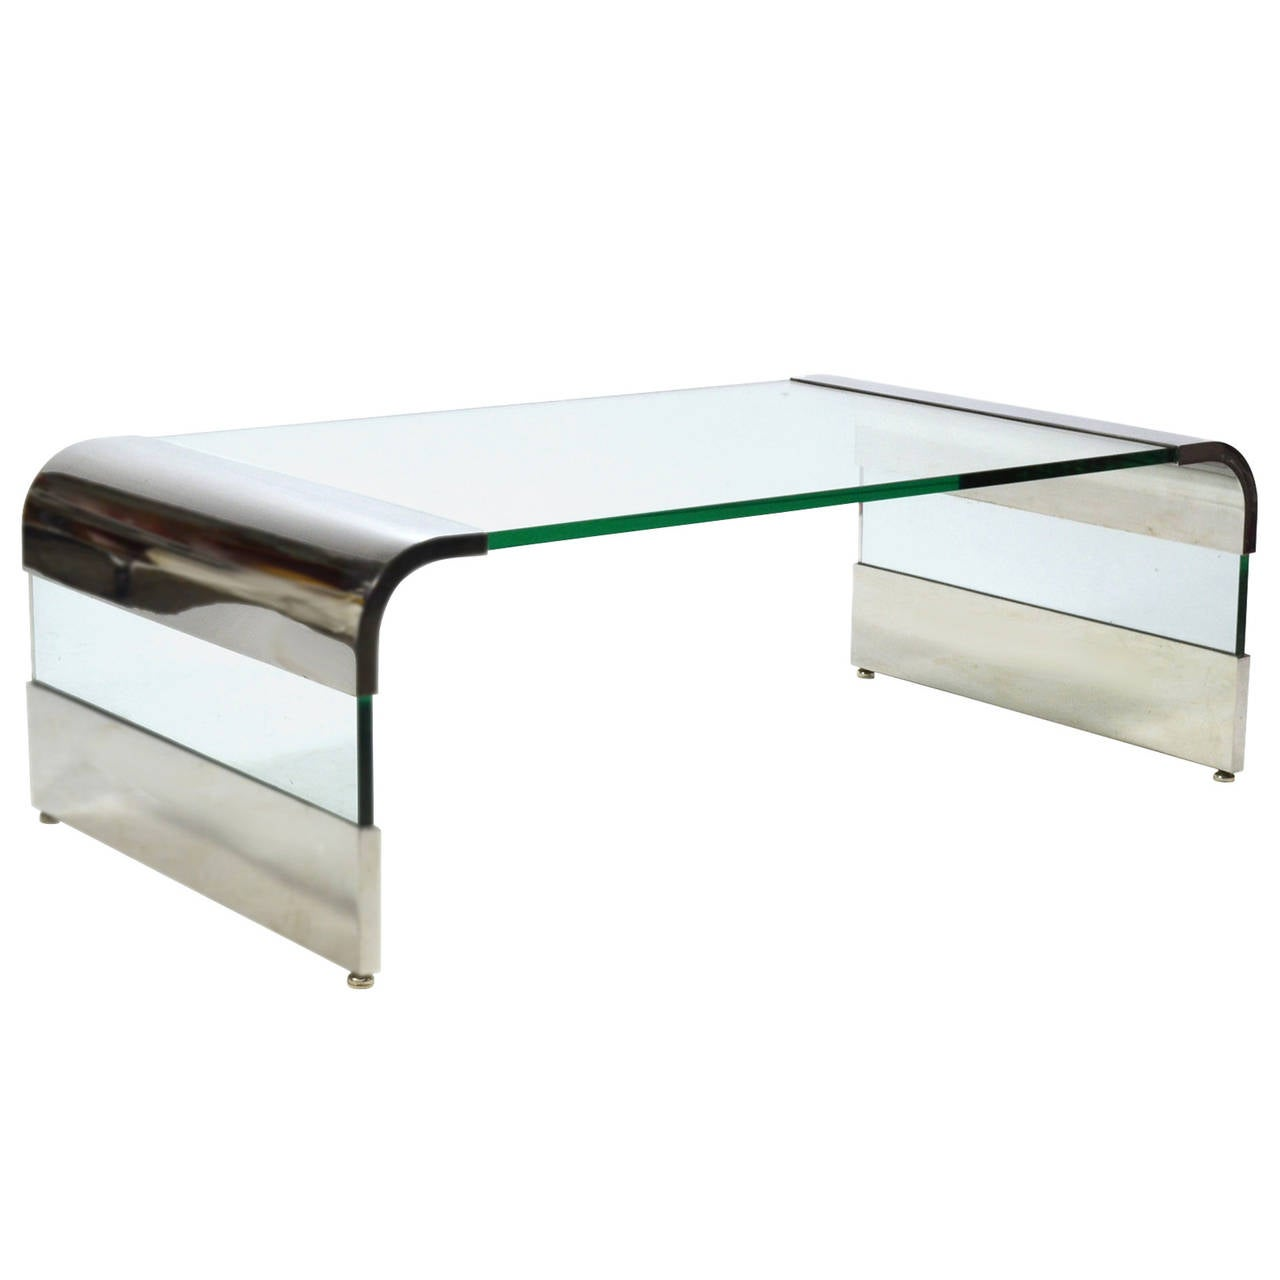 Leon Rosen Chrome And Glass Waterfall Coffee Table By Pace For Sale At 1stdibs